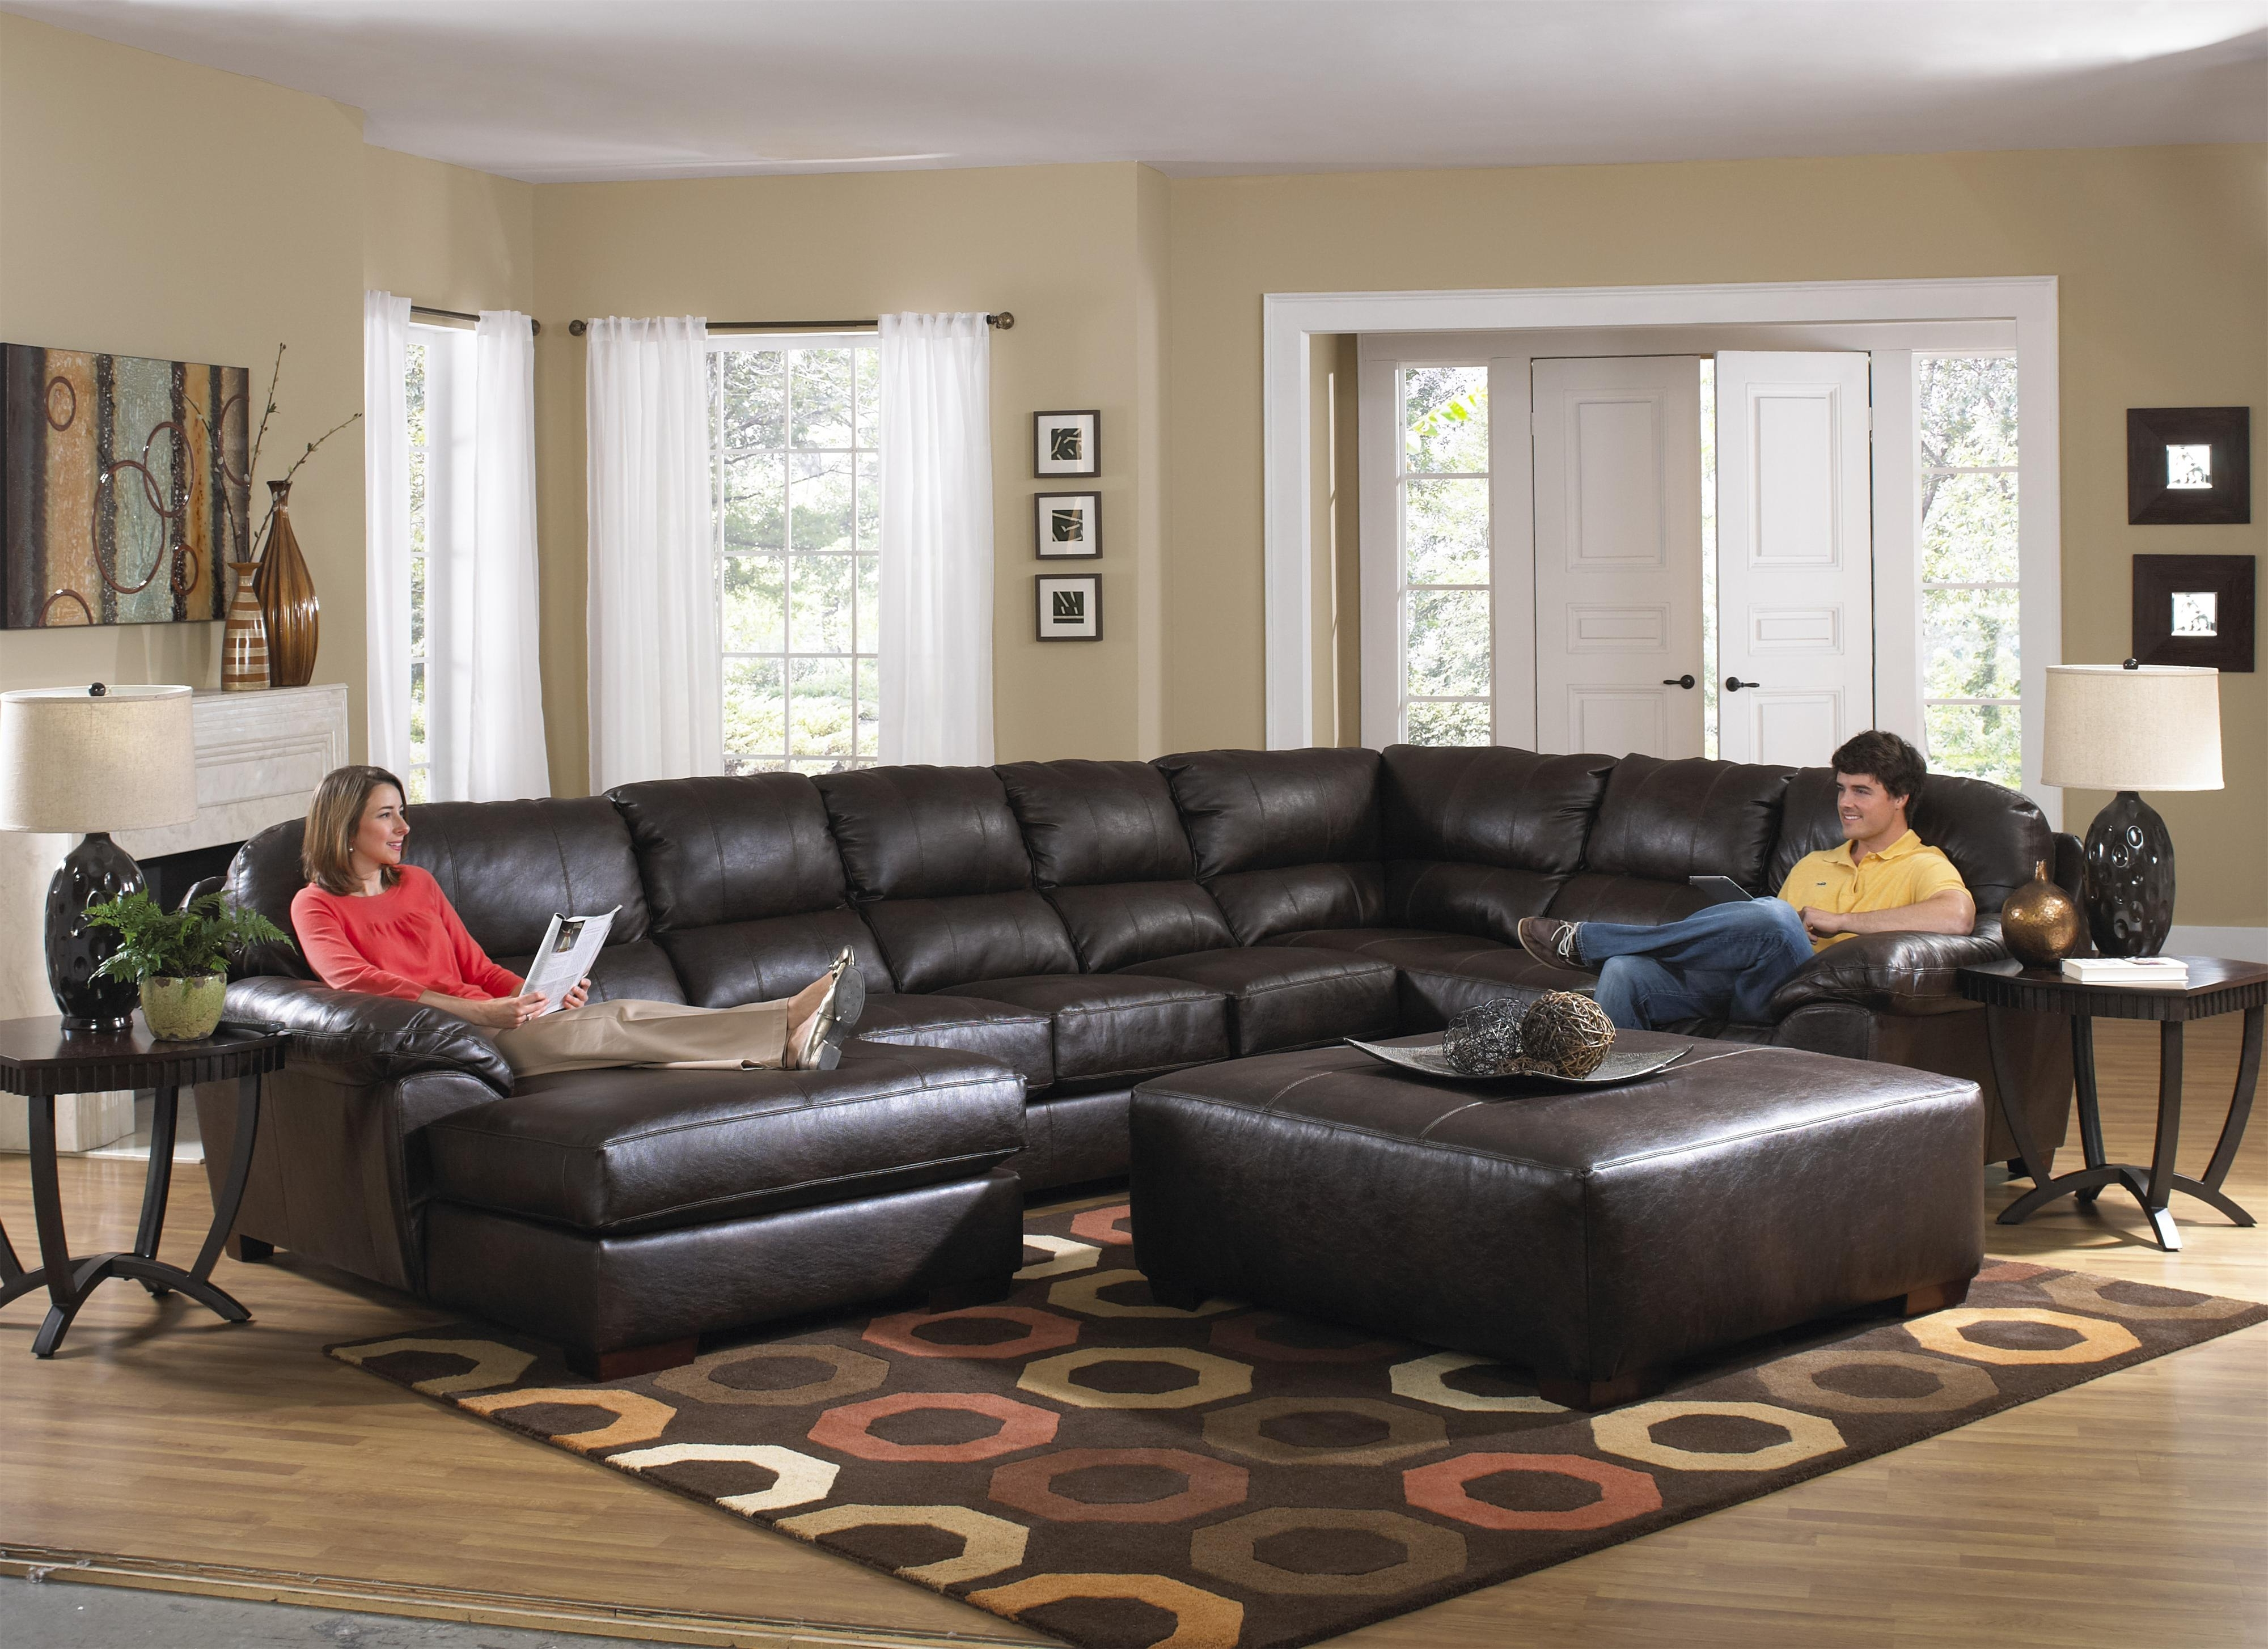 Extra Large Sectional Sofas Regarding Well Known Oversized Couches Ashley Furniture Extra Deep Couch Oversized (View 5 of 20)